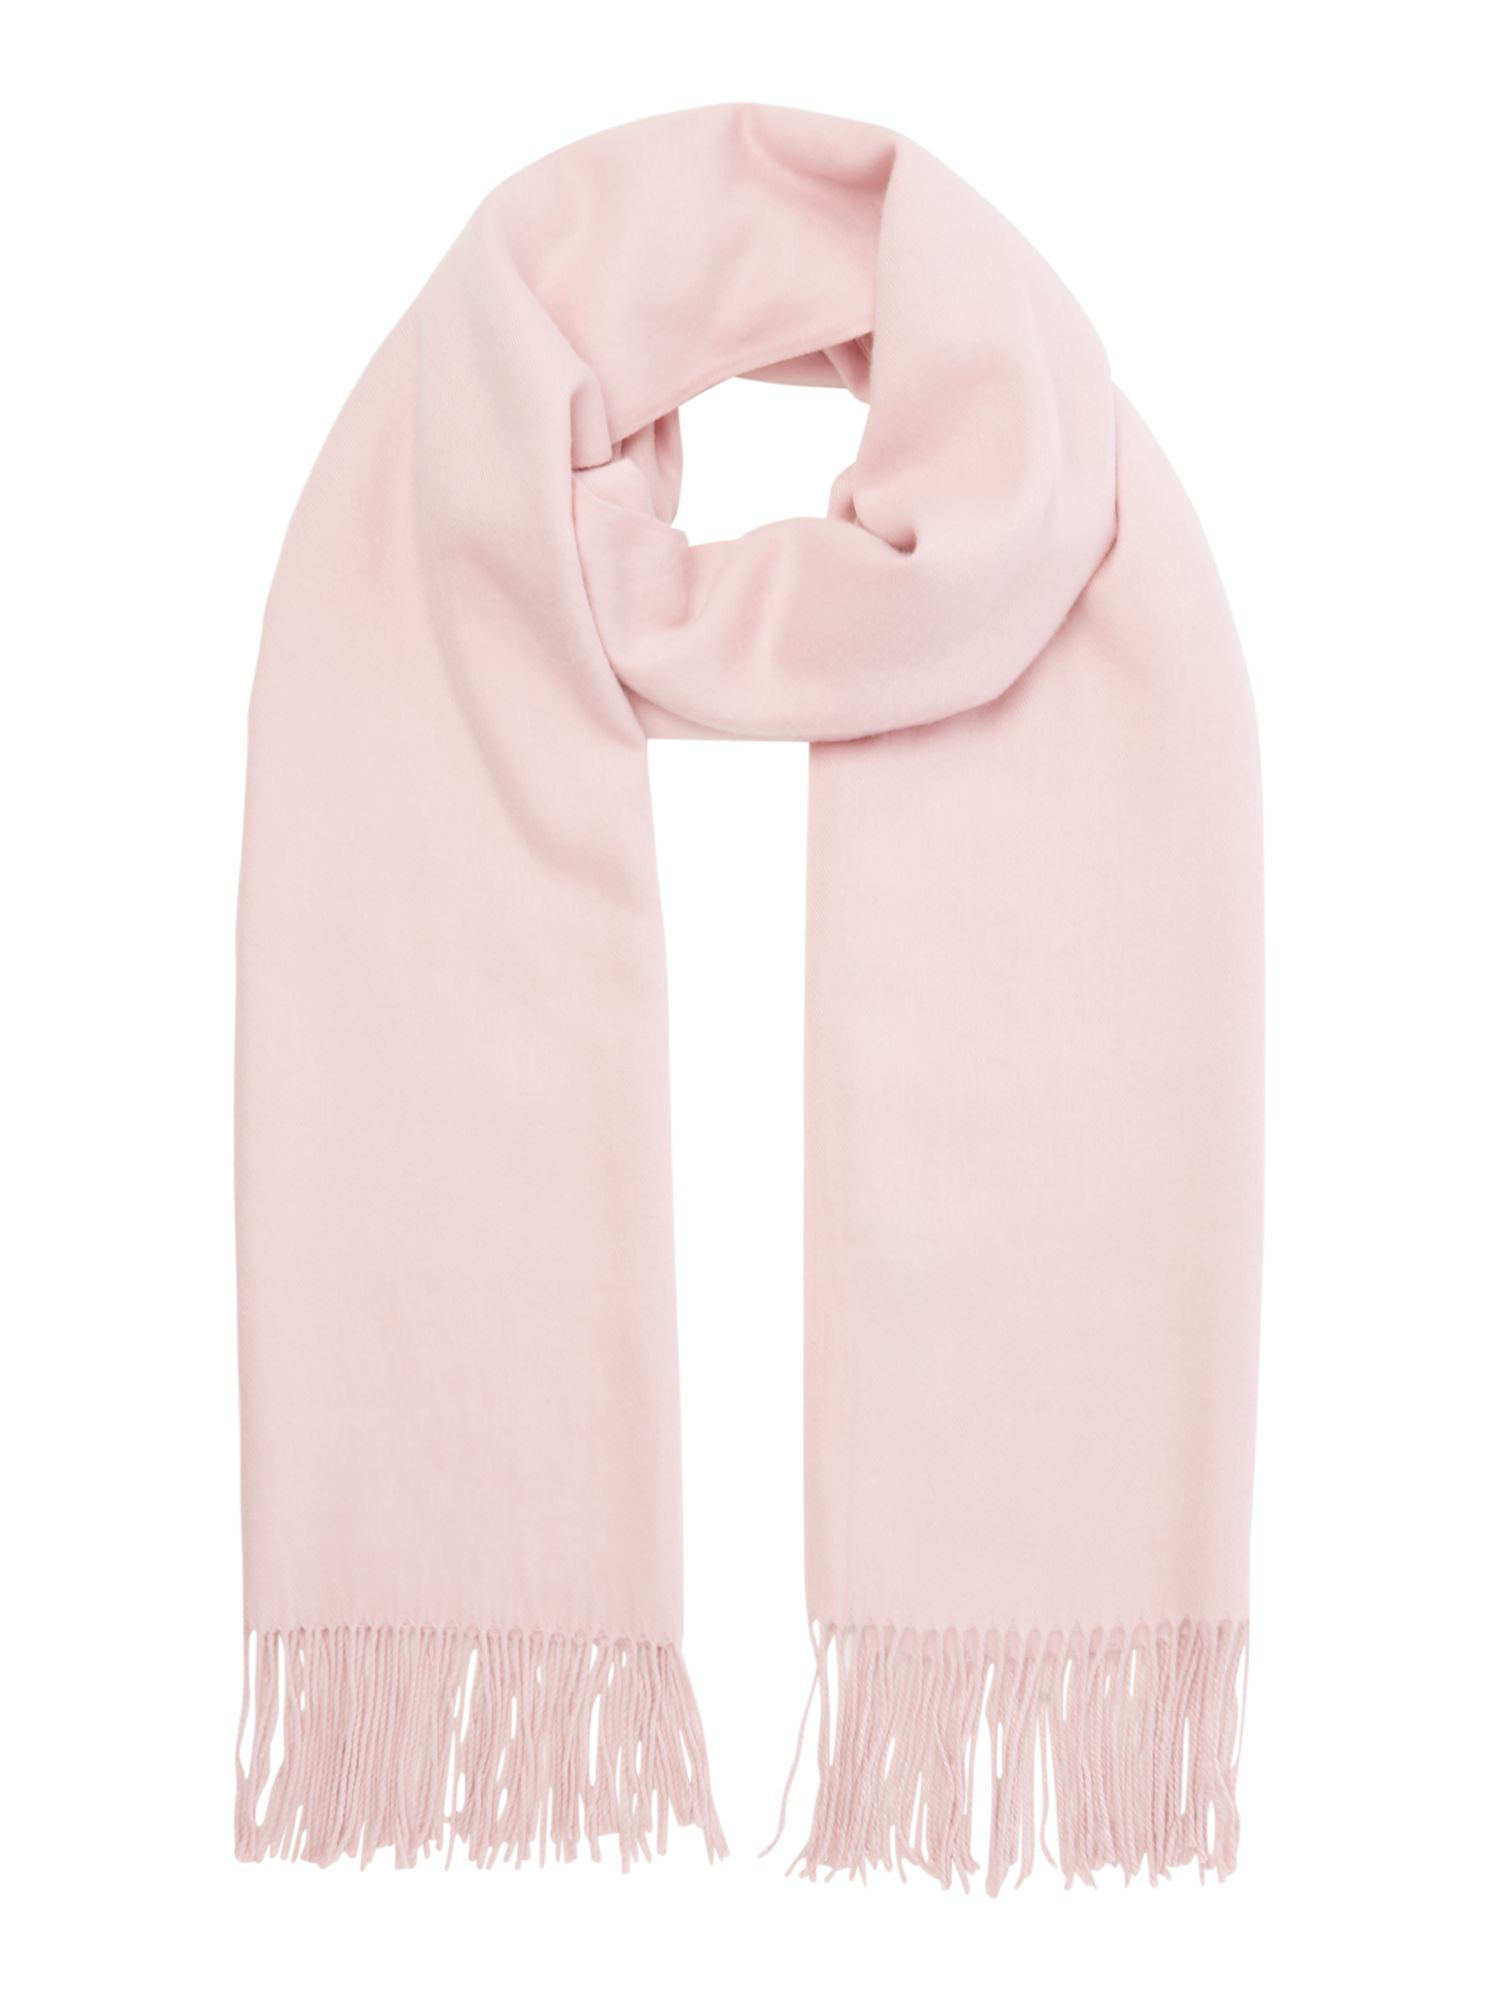 Suzanne Bettley Soft large shawl, Pink